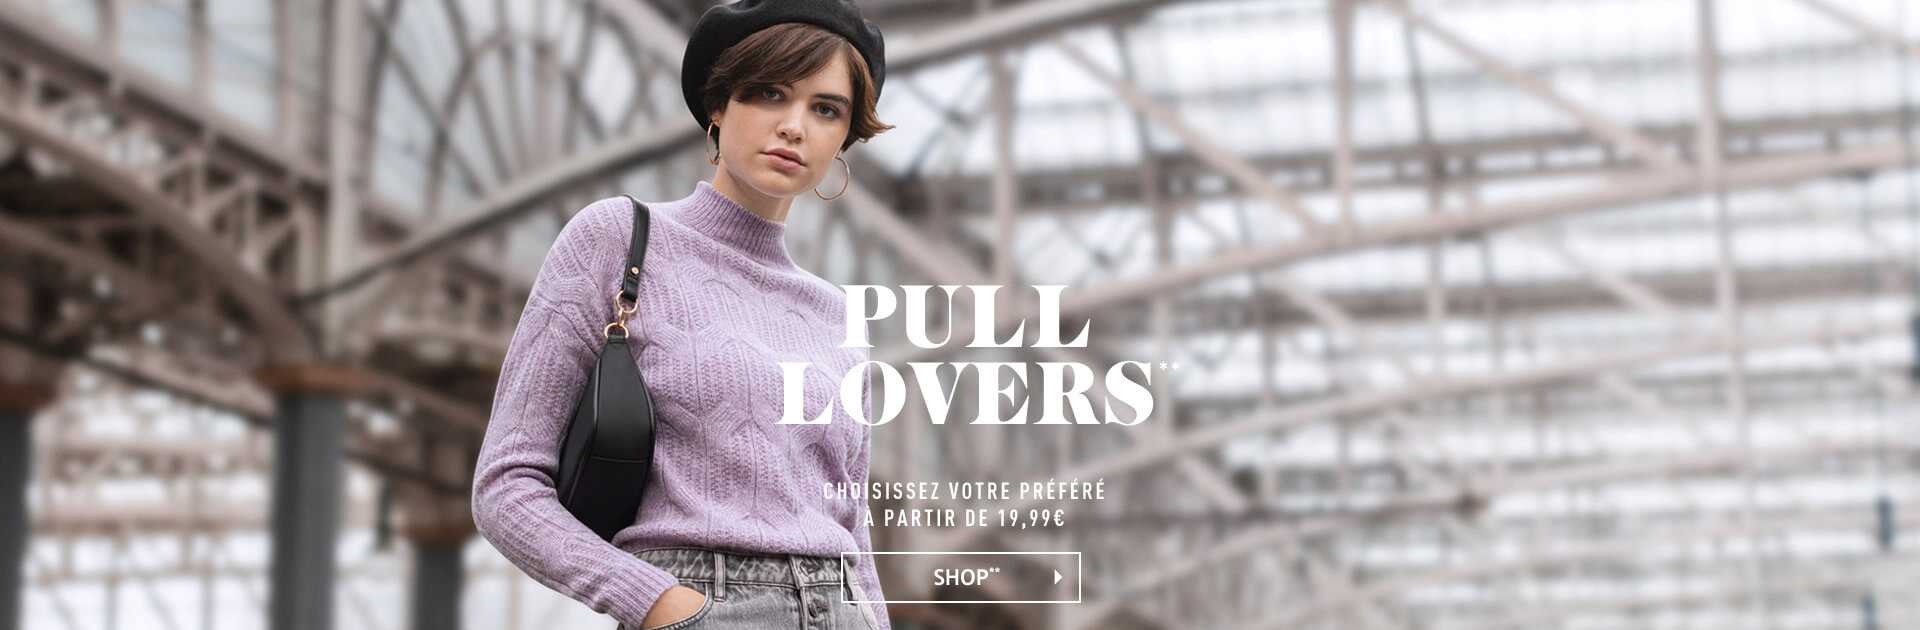 pull lovers**